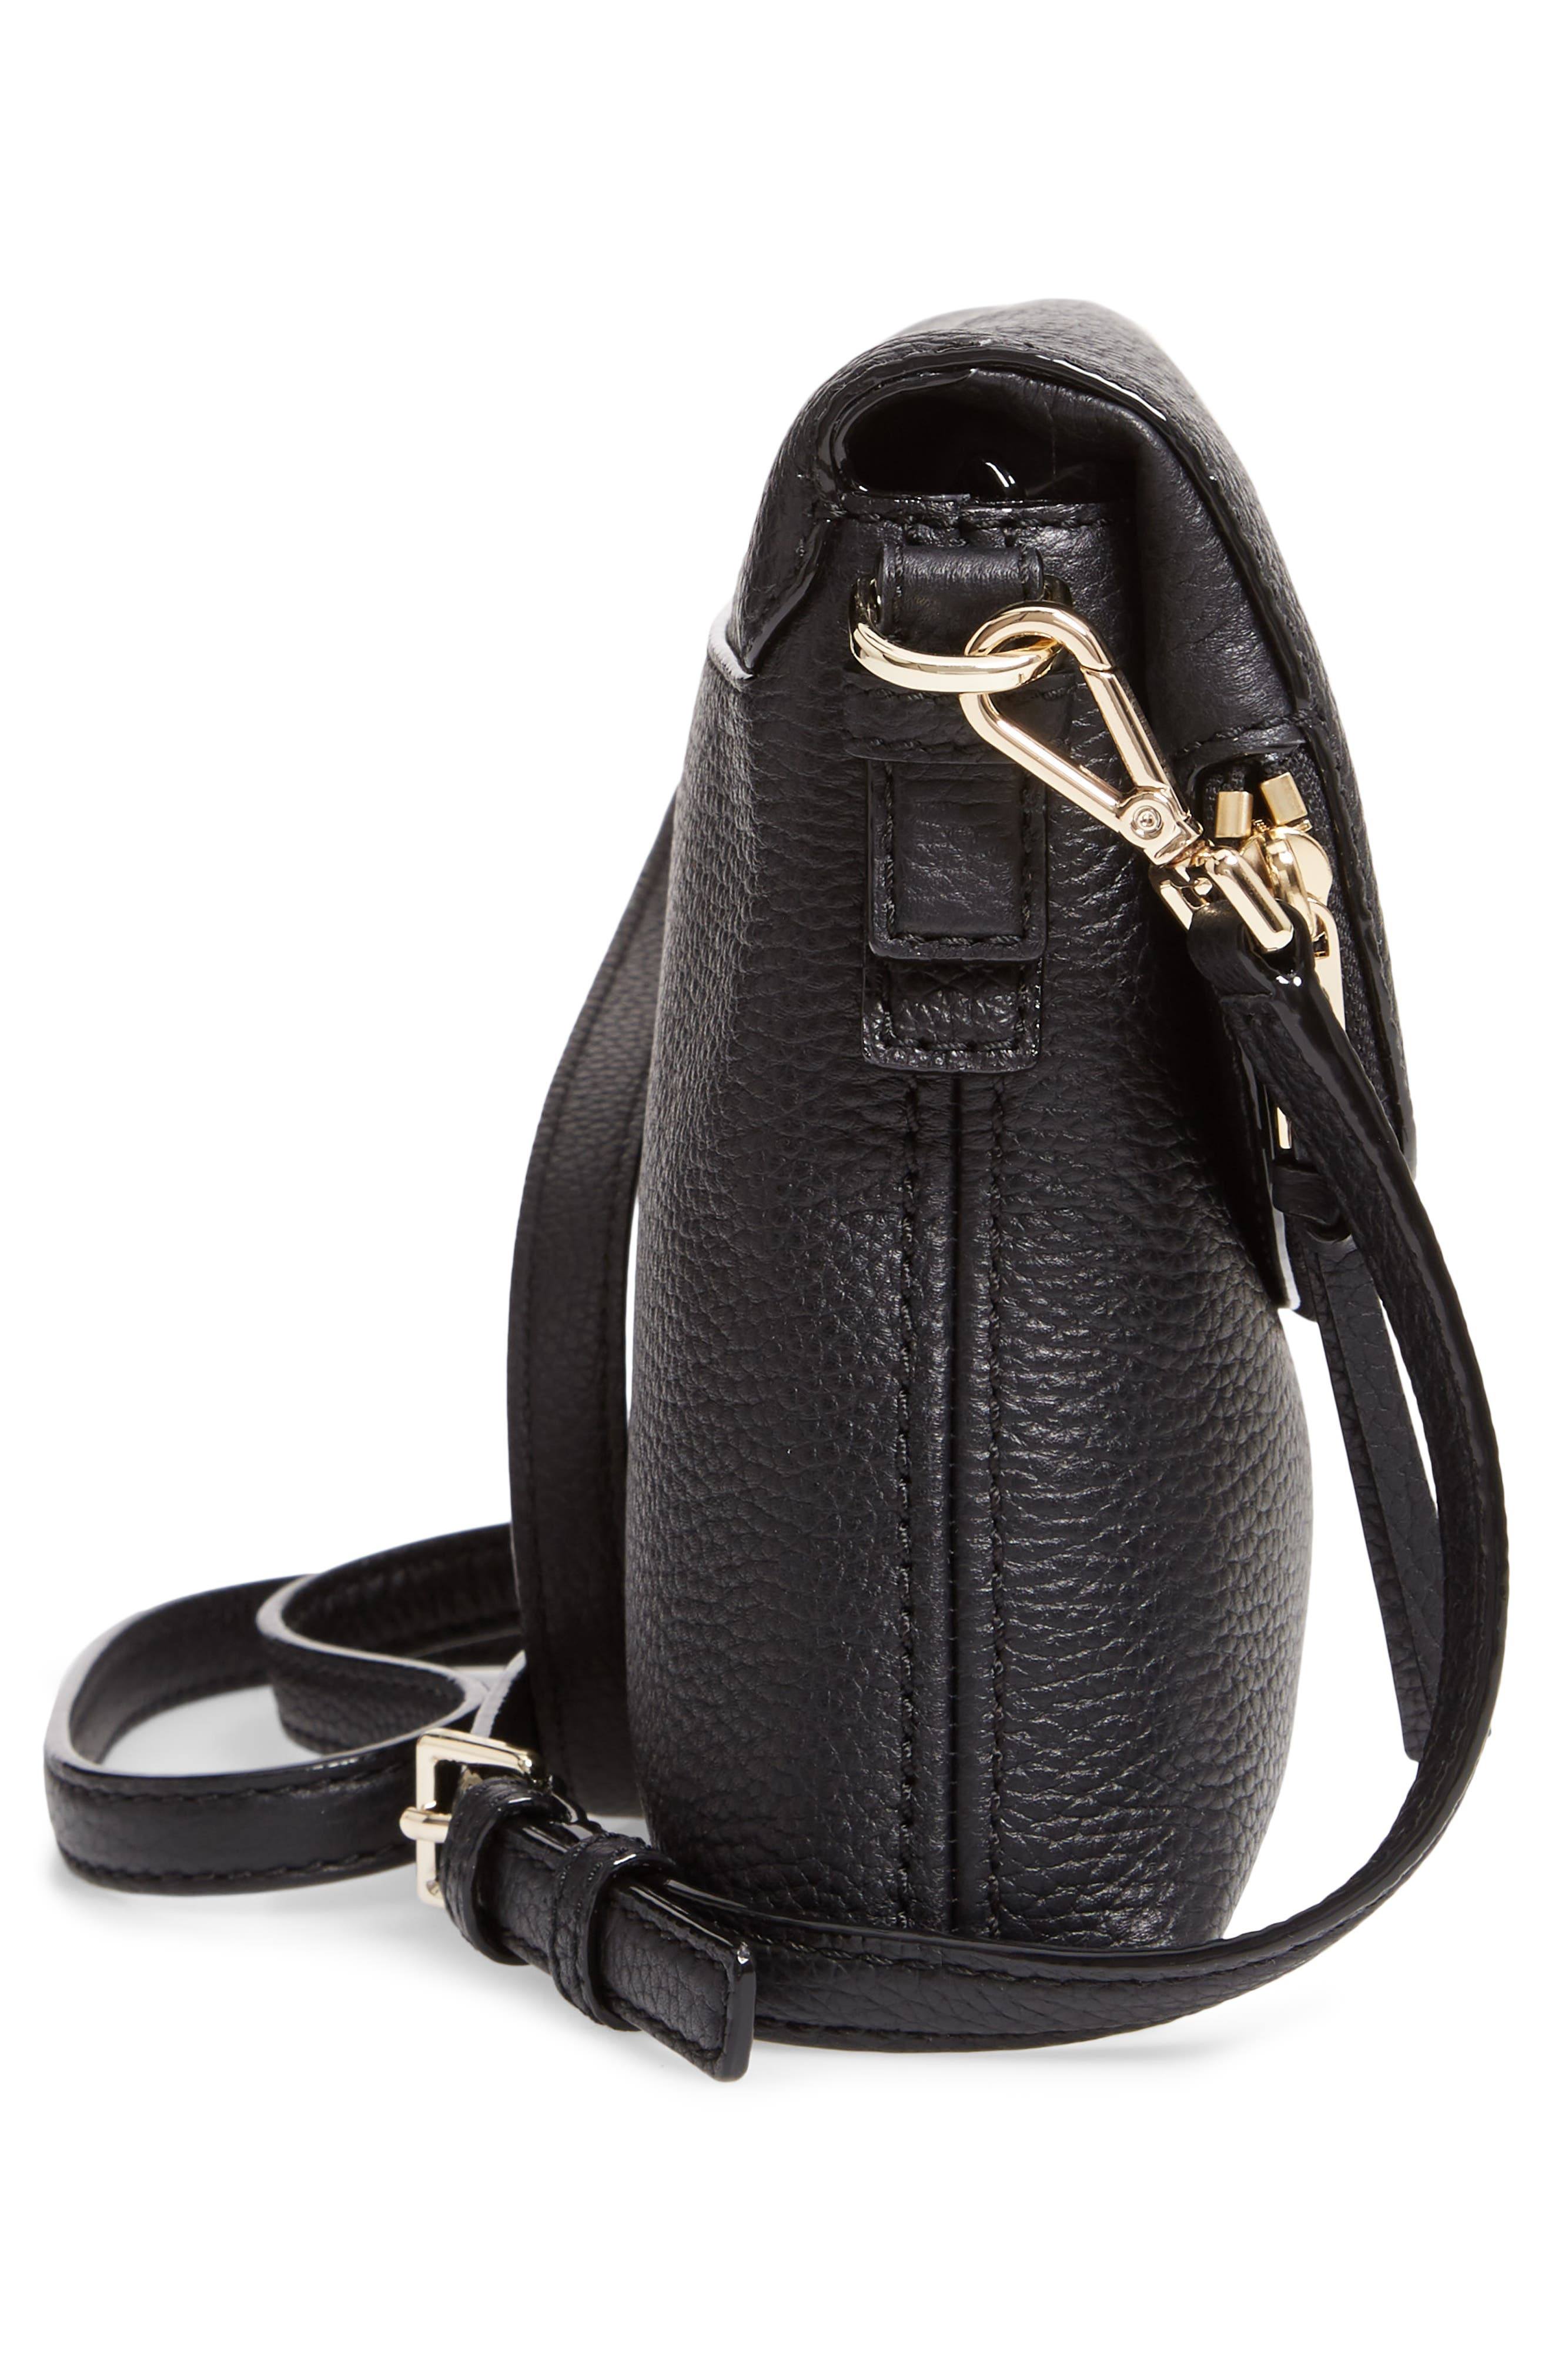 jackson street - harlyn leather crossbody bag,                             Alternate thumbnail 5, color,                             BLACK